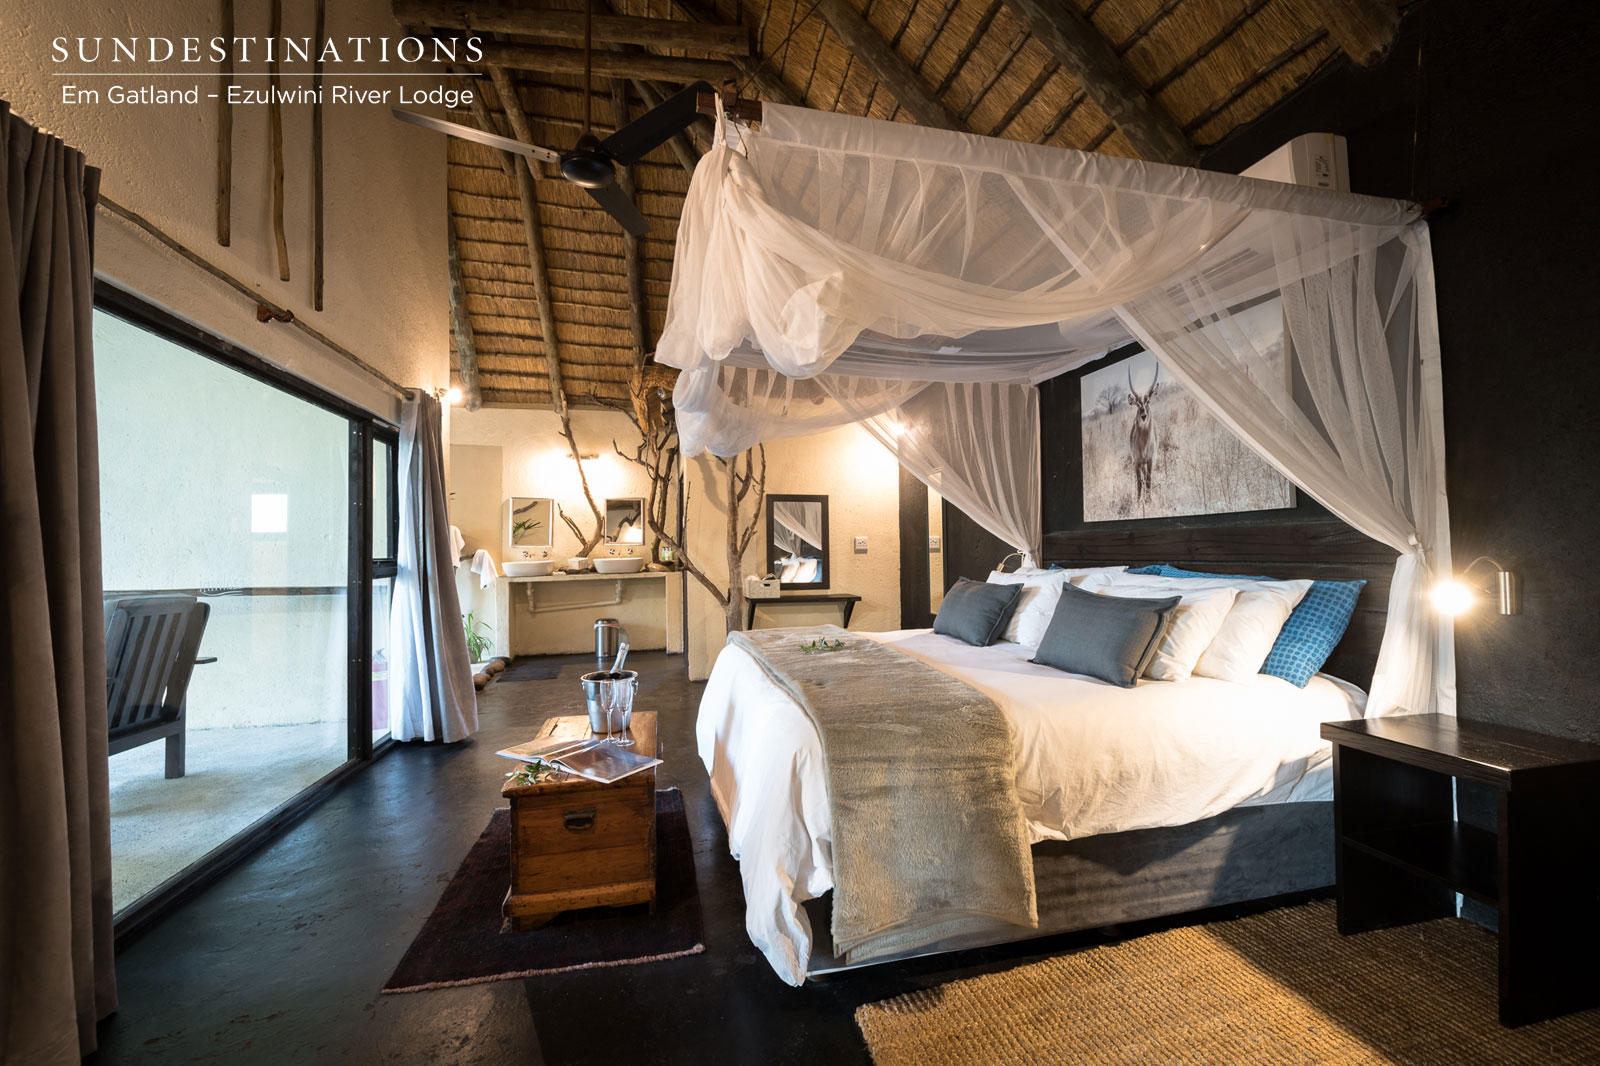 Honeymoon Suite at Ezulwini